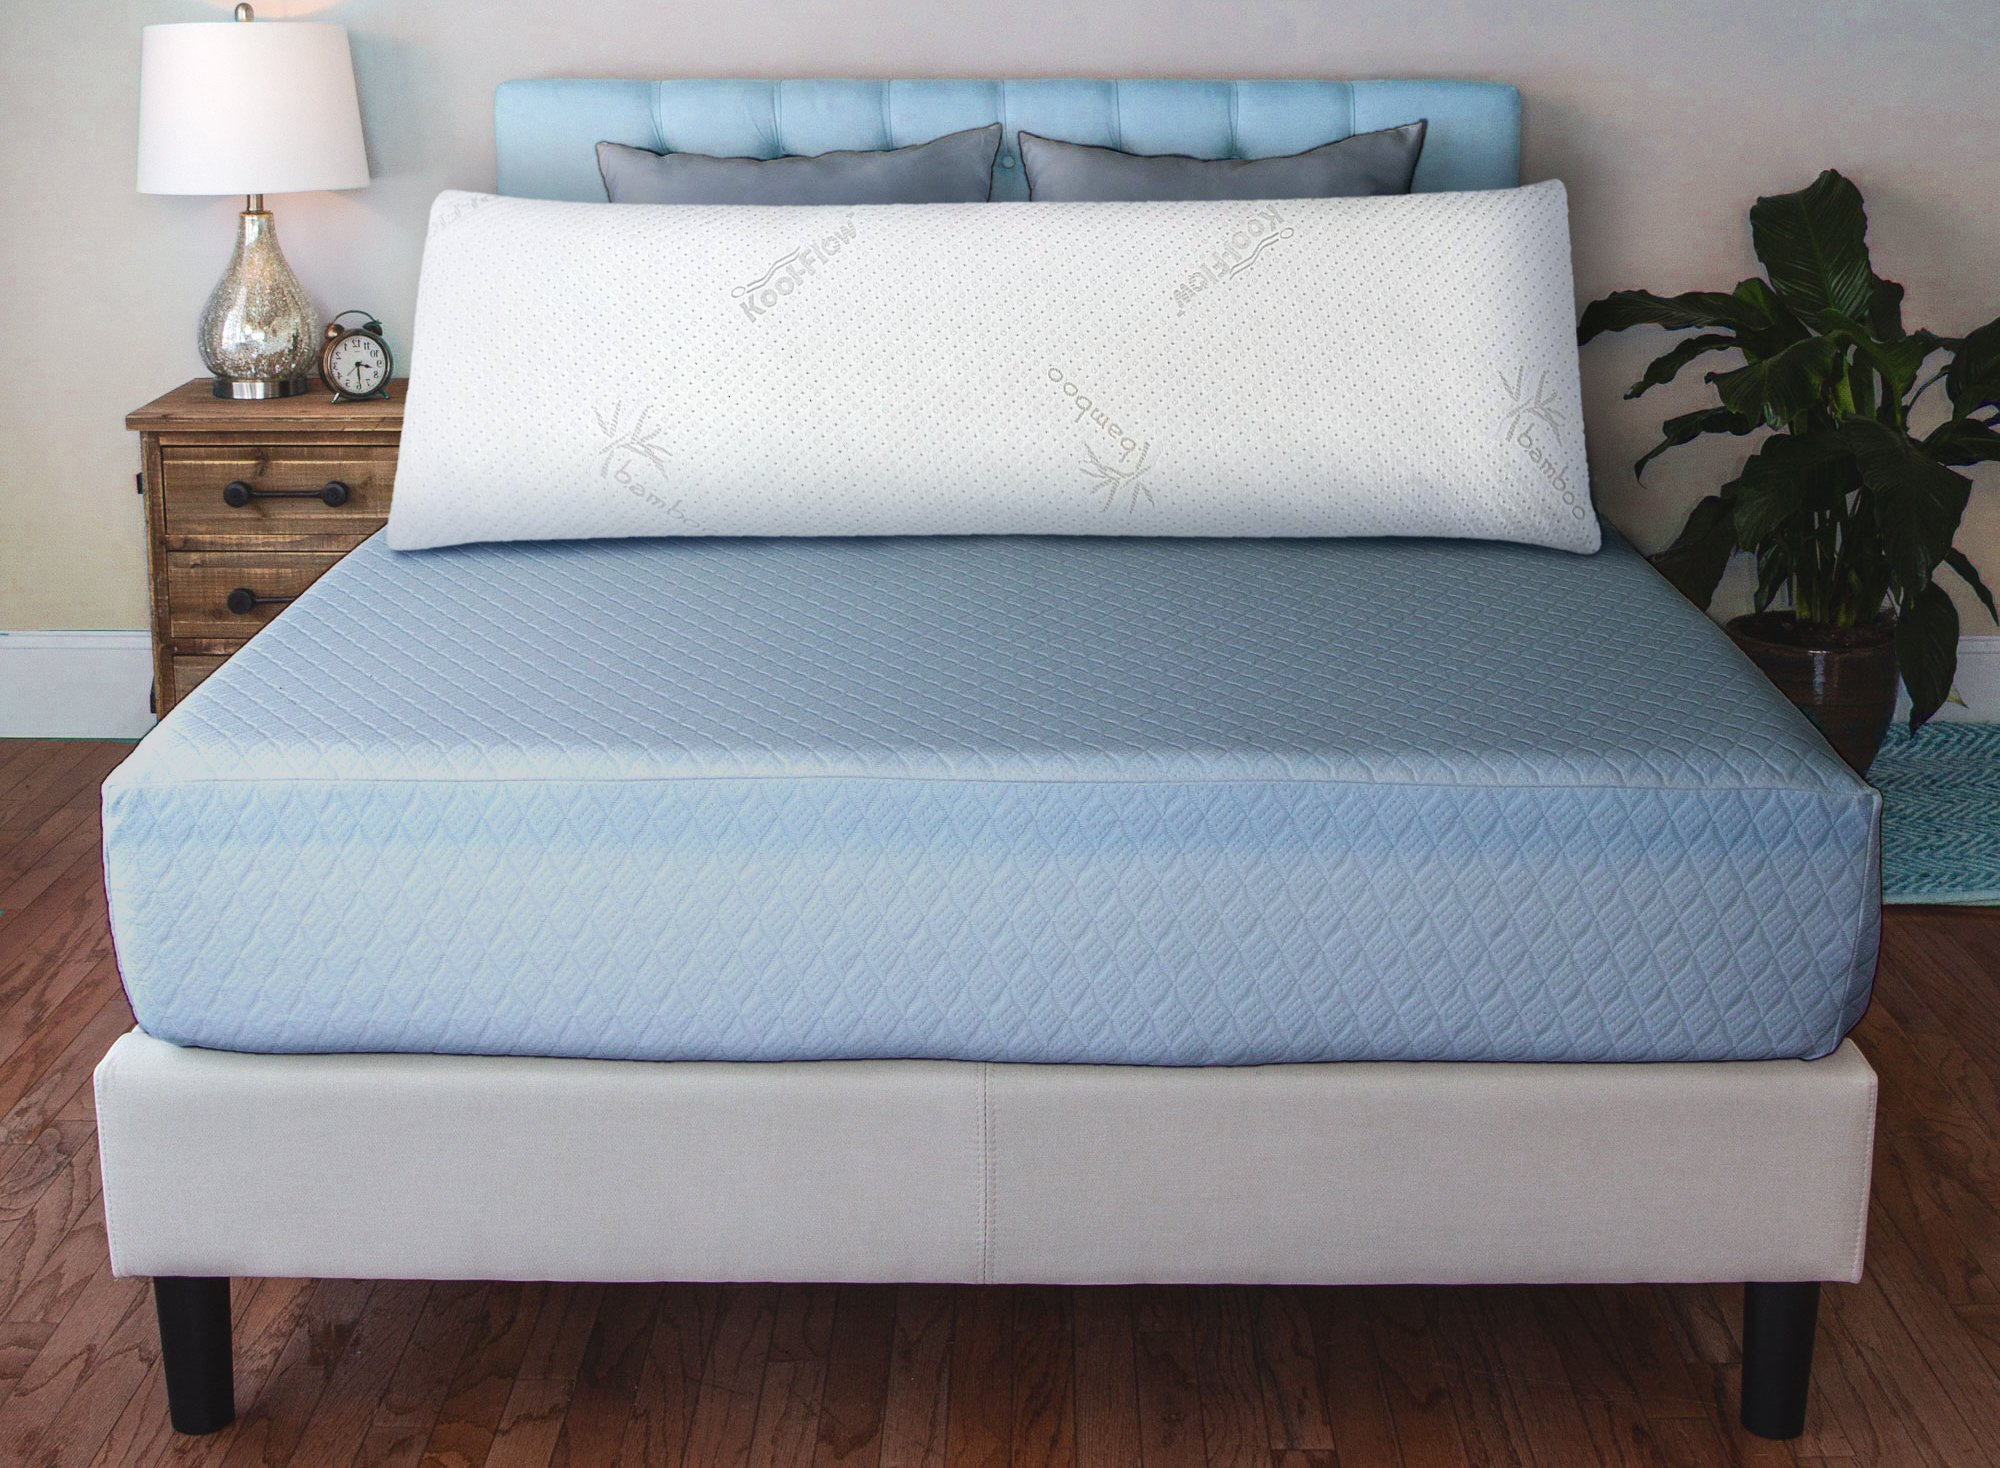 get your pregnancy pillow customized to